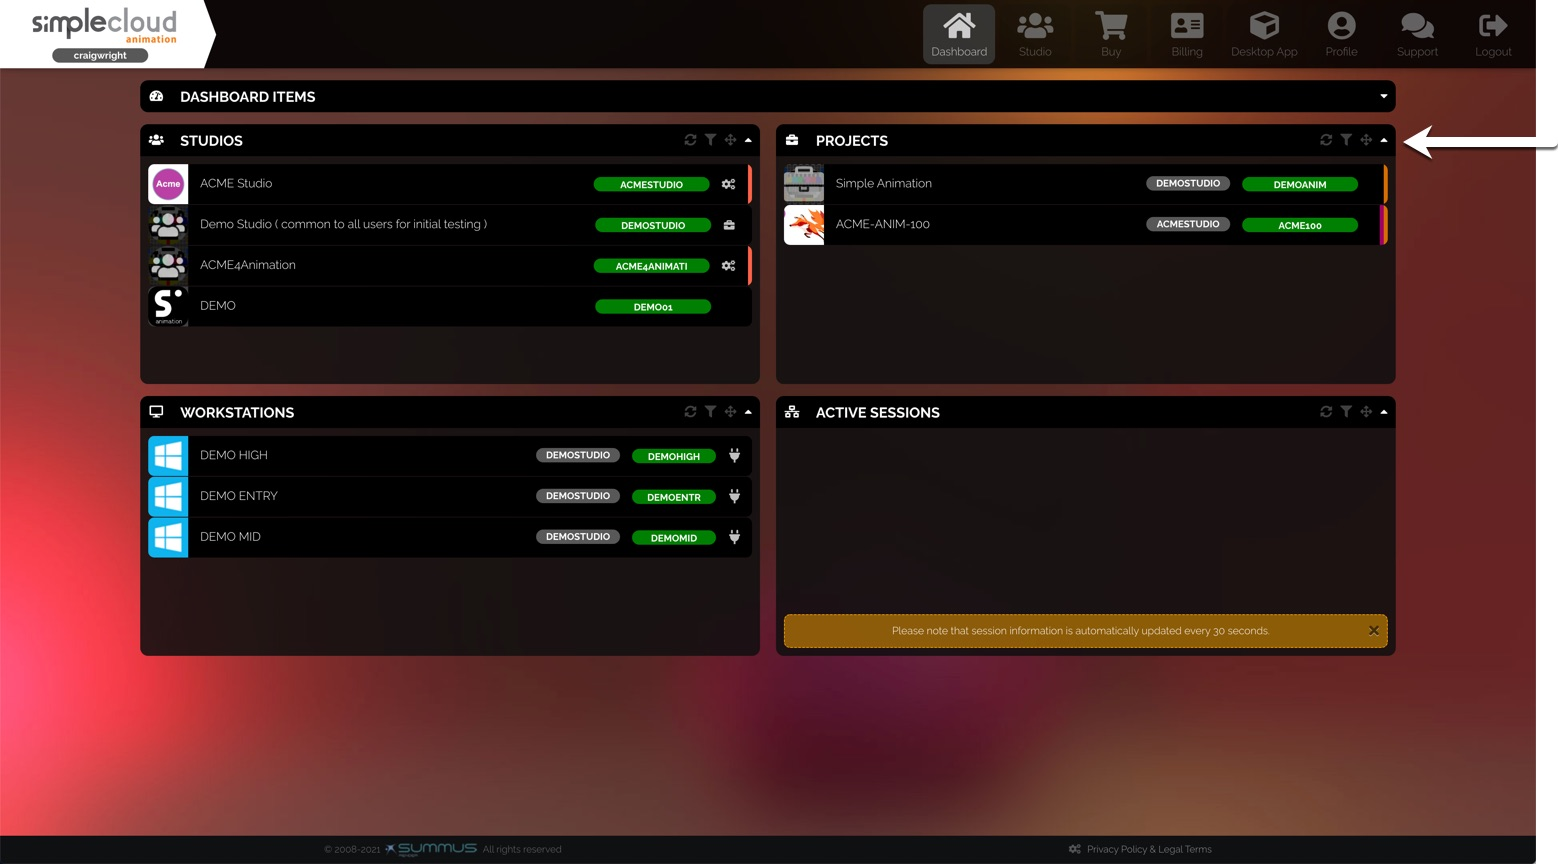 Dashboard. There is a list of projects in the top-right section.